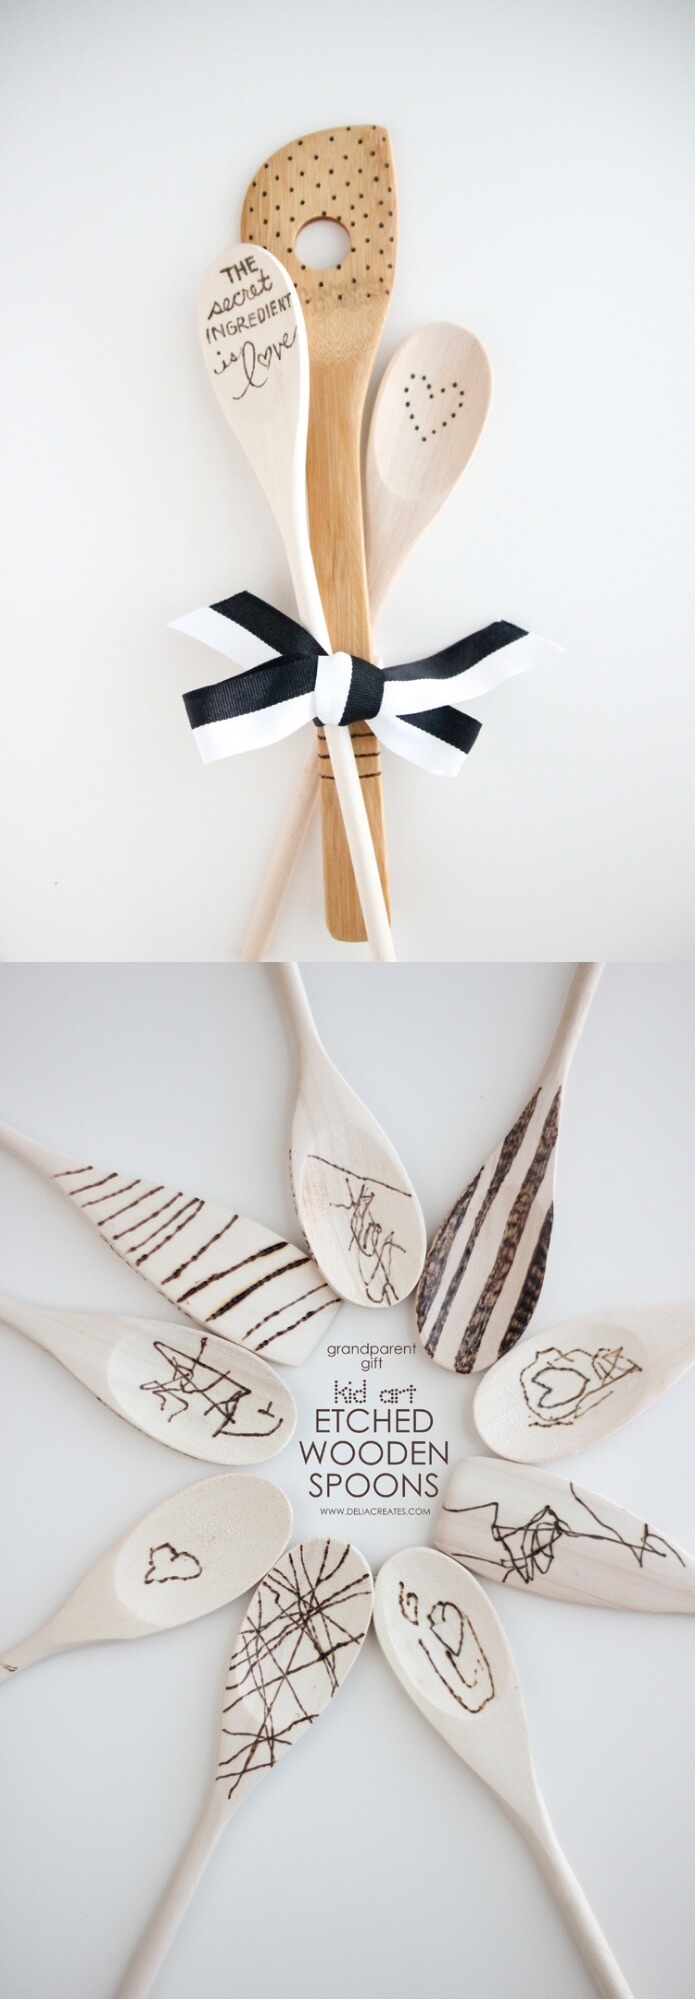 Kid art etched wooden spoons | Christmas Gifts for Grandparents: Creative Holiday Ideas for Grandma and Grandpa